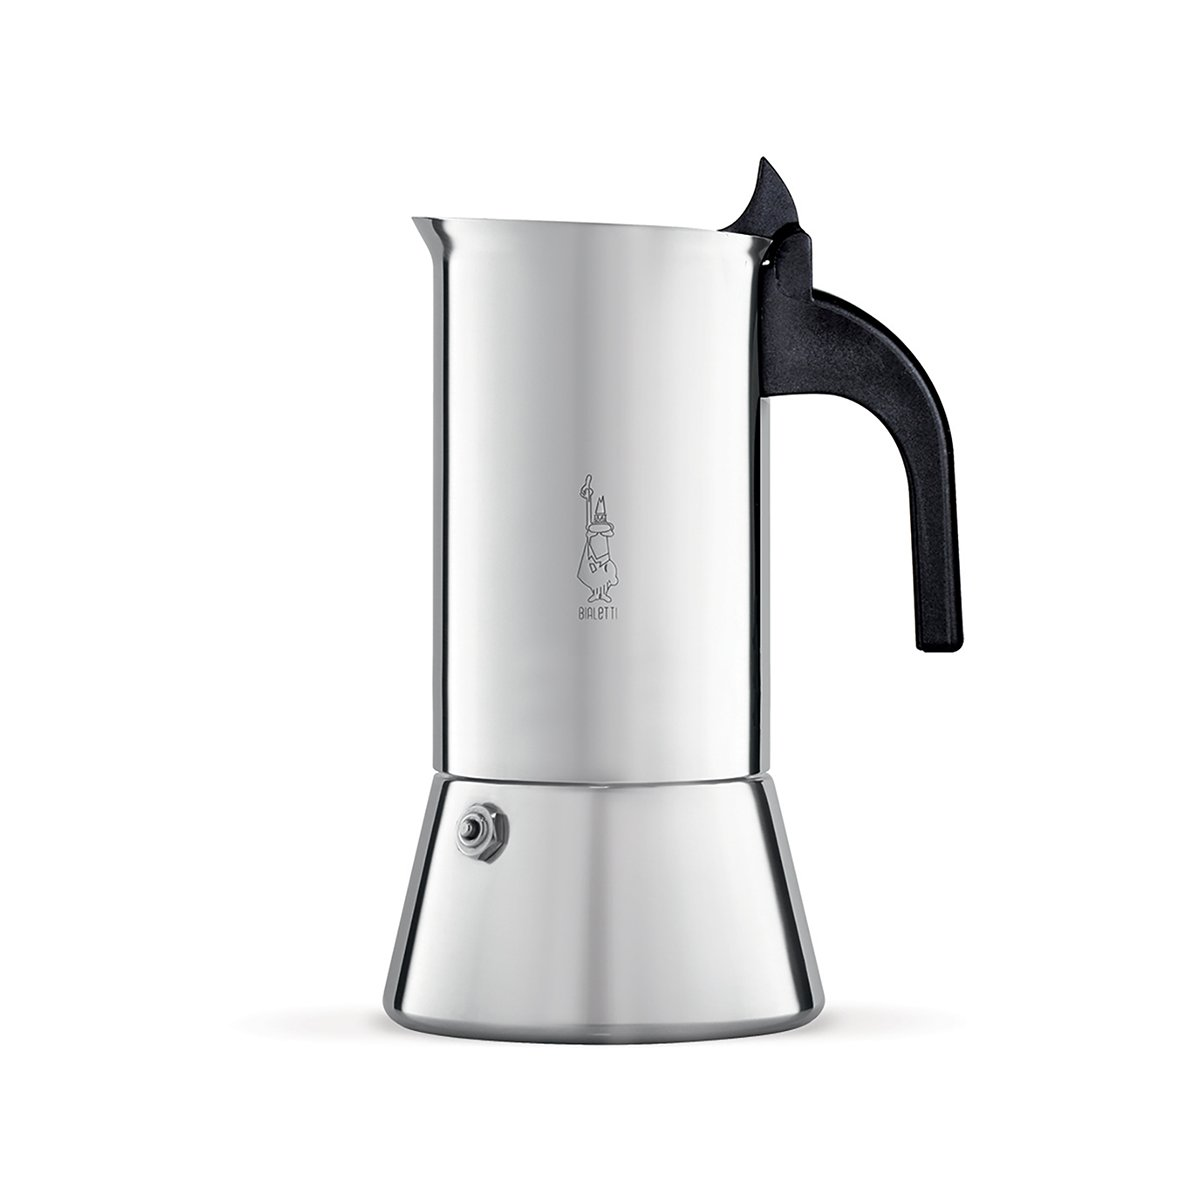 Bialetti 10 Cup Venus Stainless Steel Stovetop Espresso Coffee Maker Induction by Bialetti